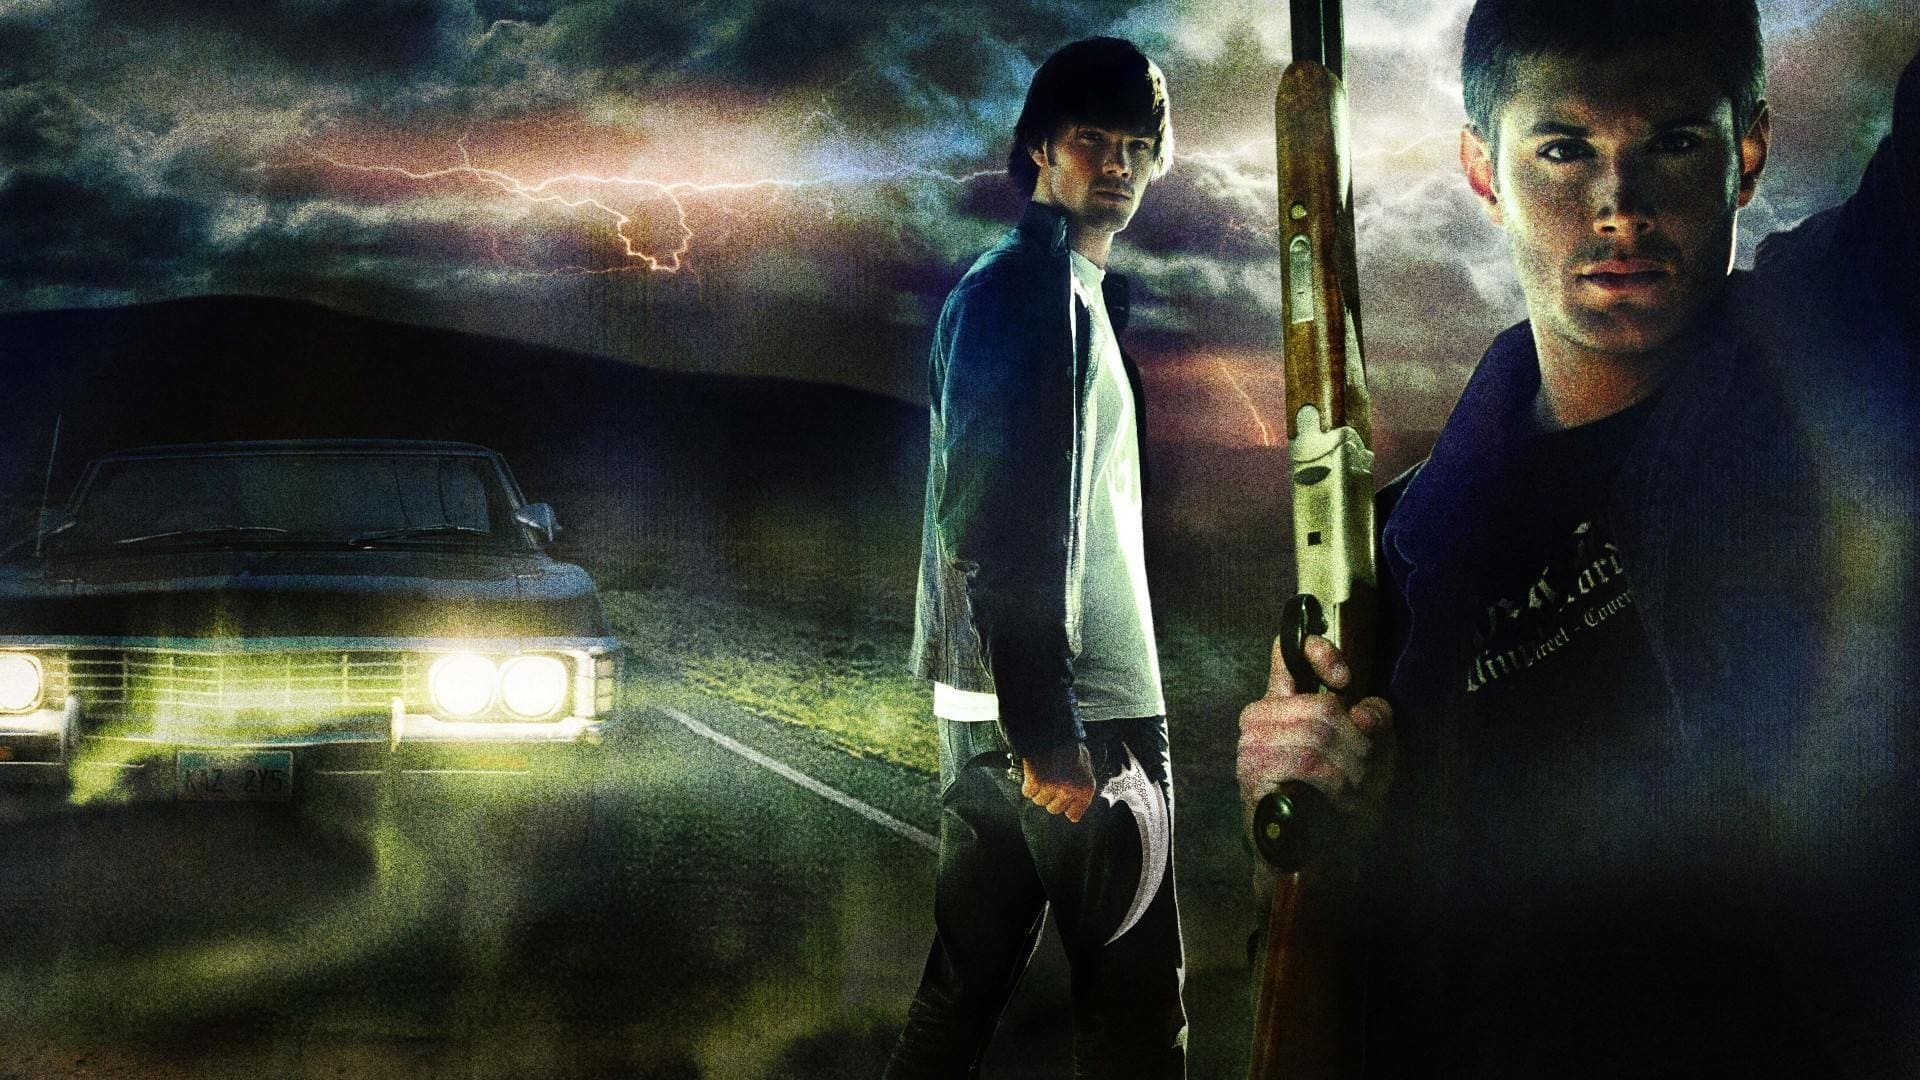 Supernatural - Season 4 Episode 9 I Know What You Did Last Summer